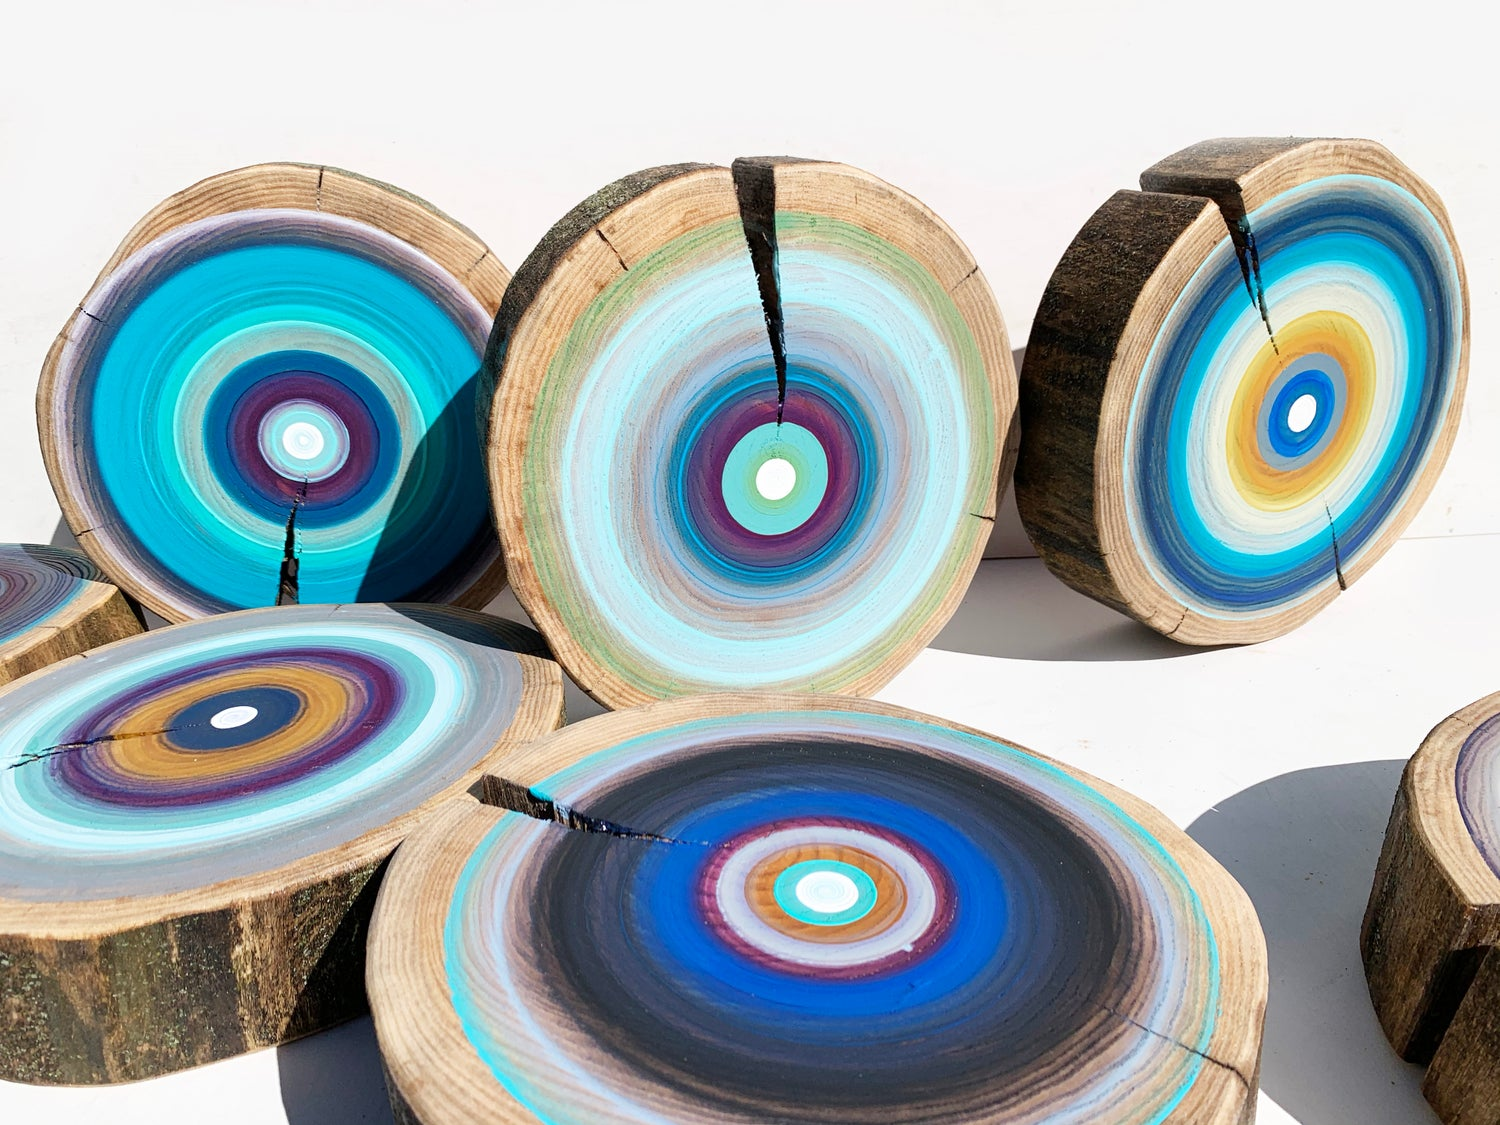 Image of Large Modern Wood Forest Wall Art Original Paintings In Blues on Elm Log Slices